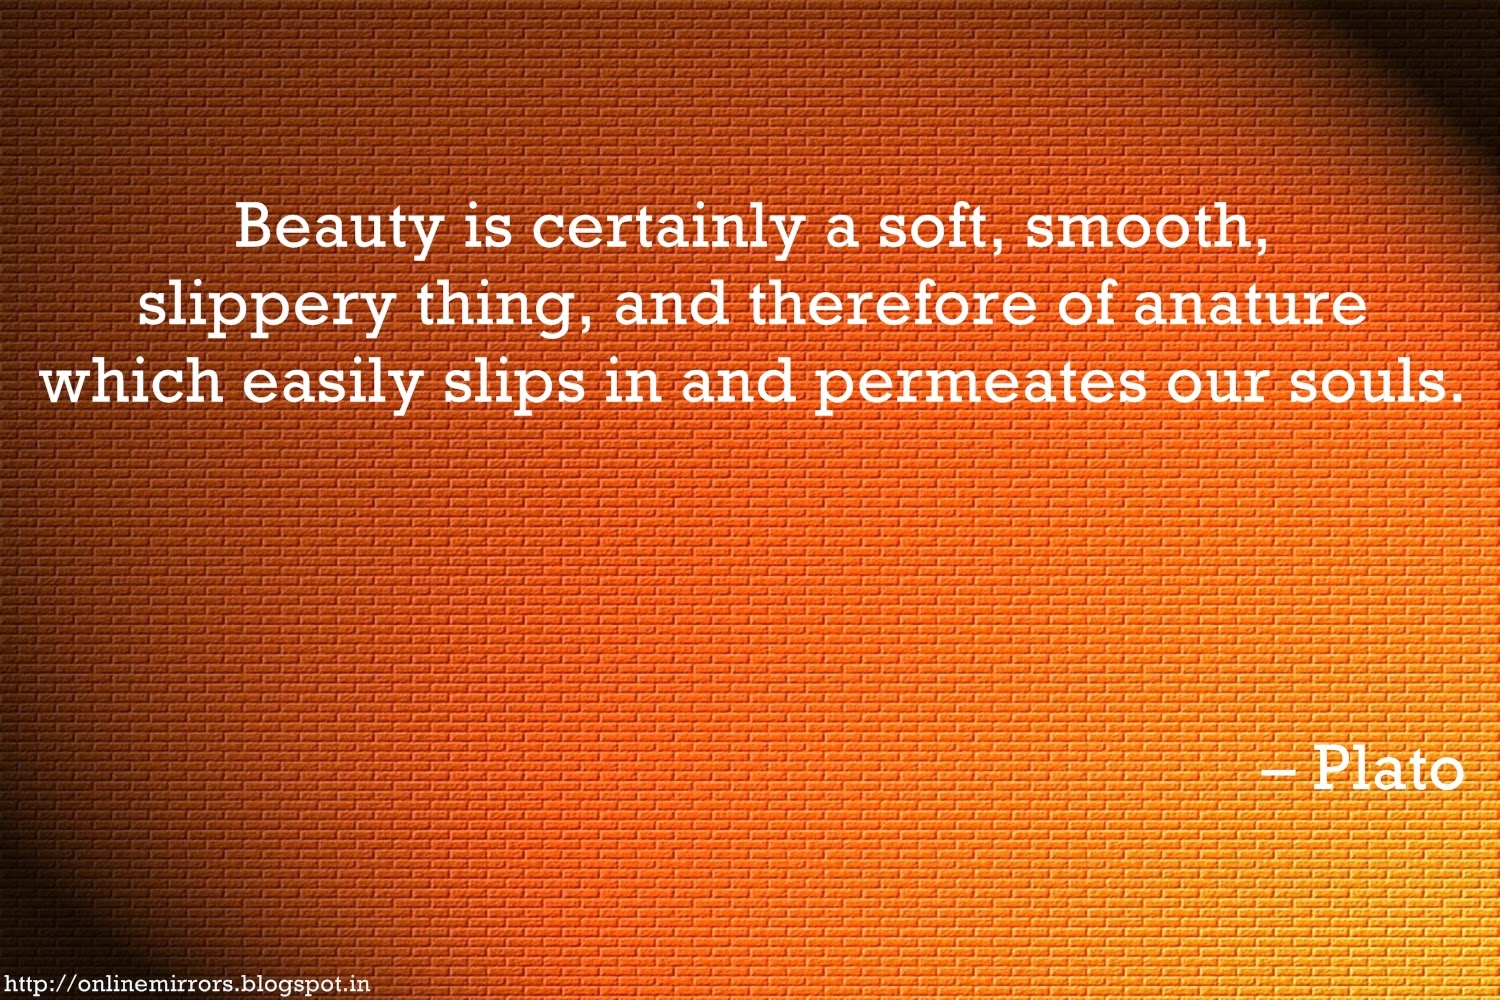 Plato Quotes Beauty Beauty of Nature Quotes